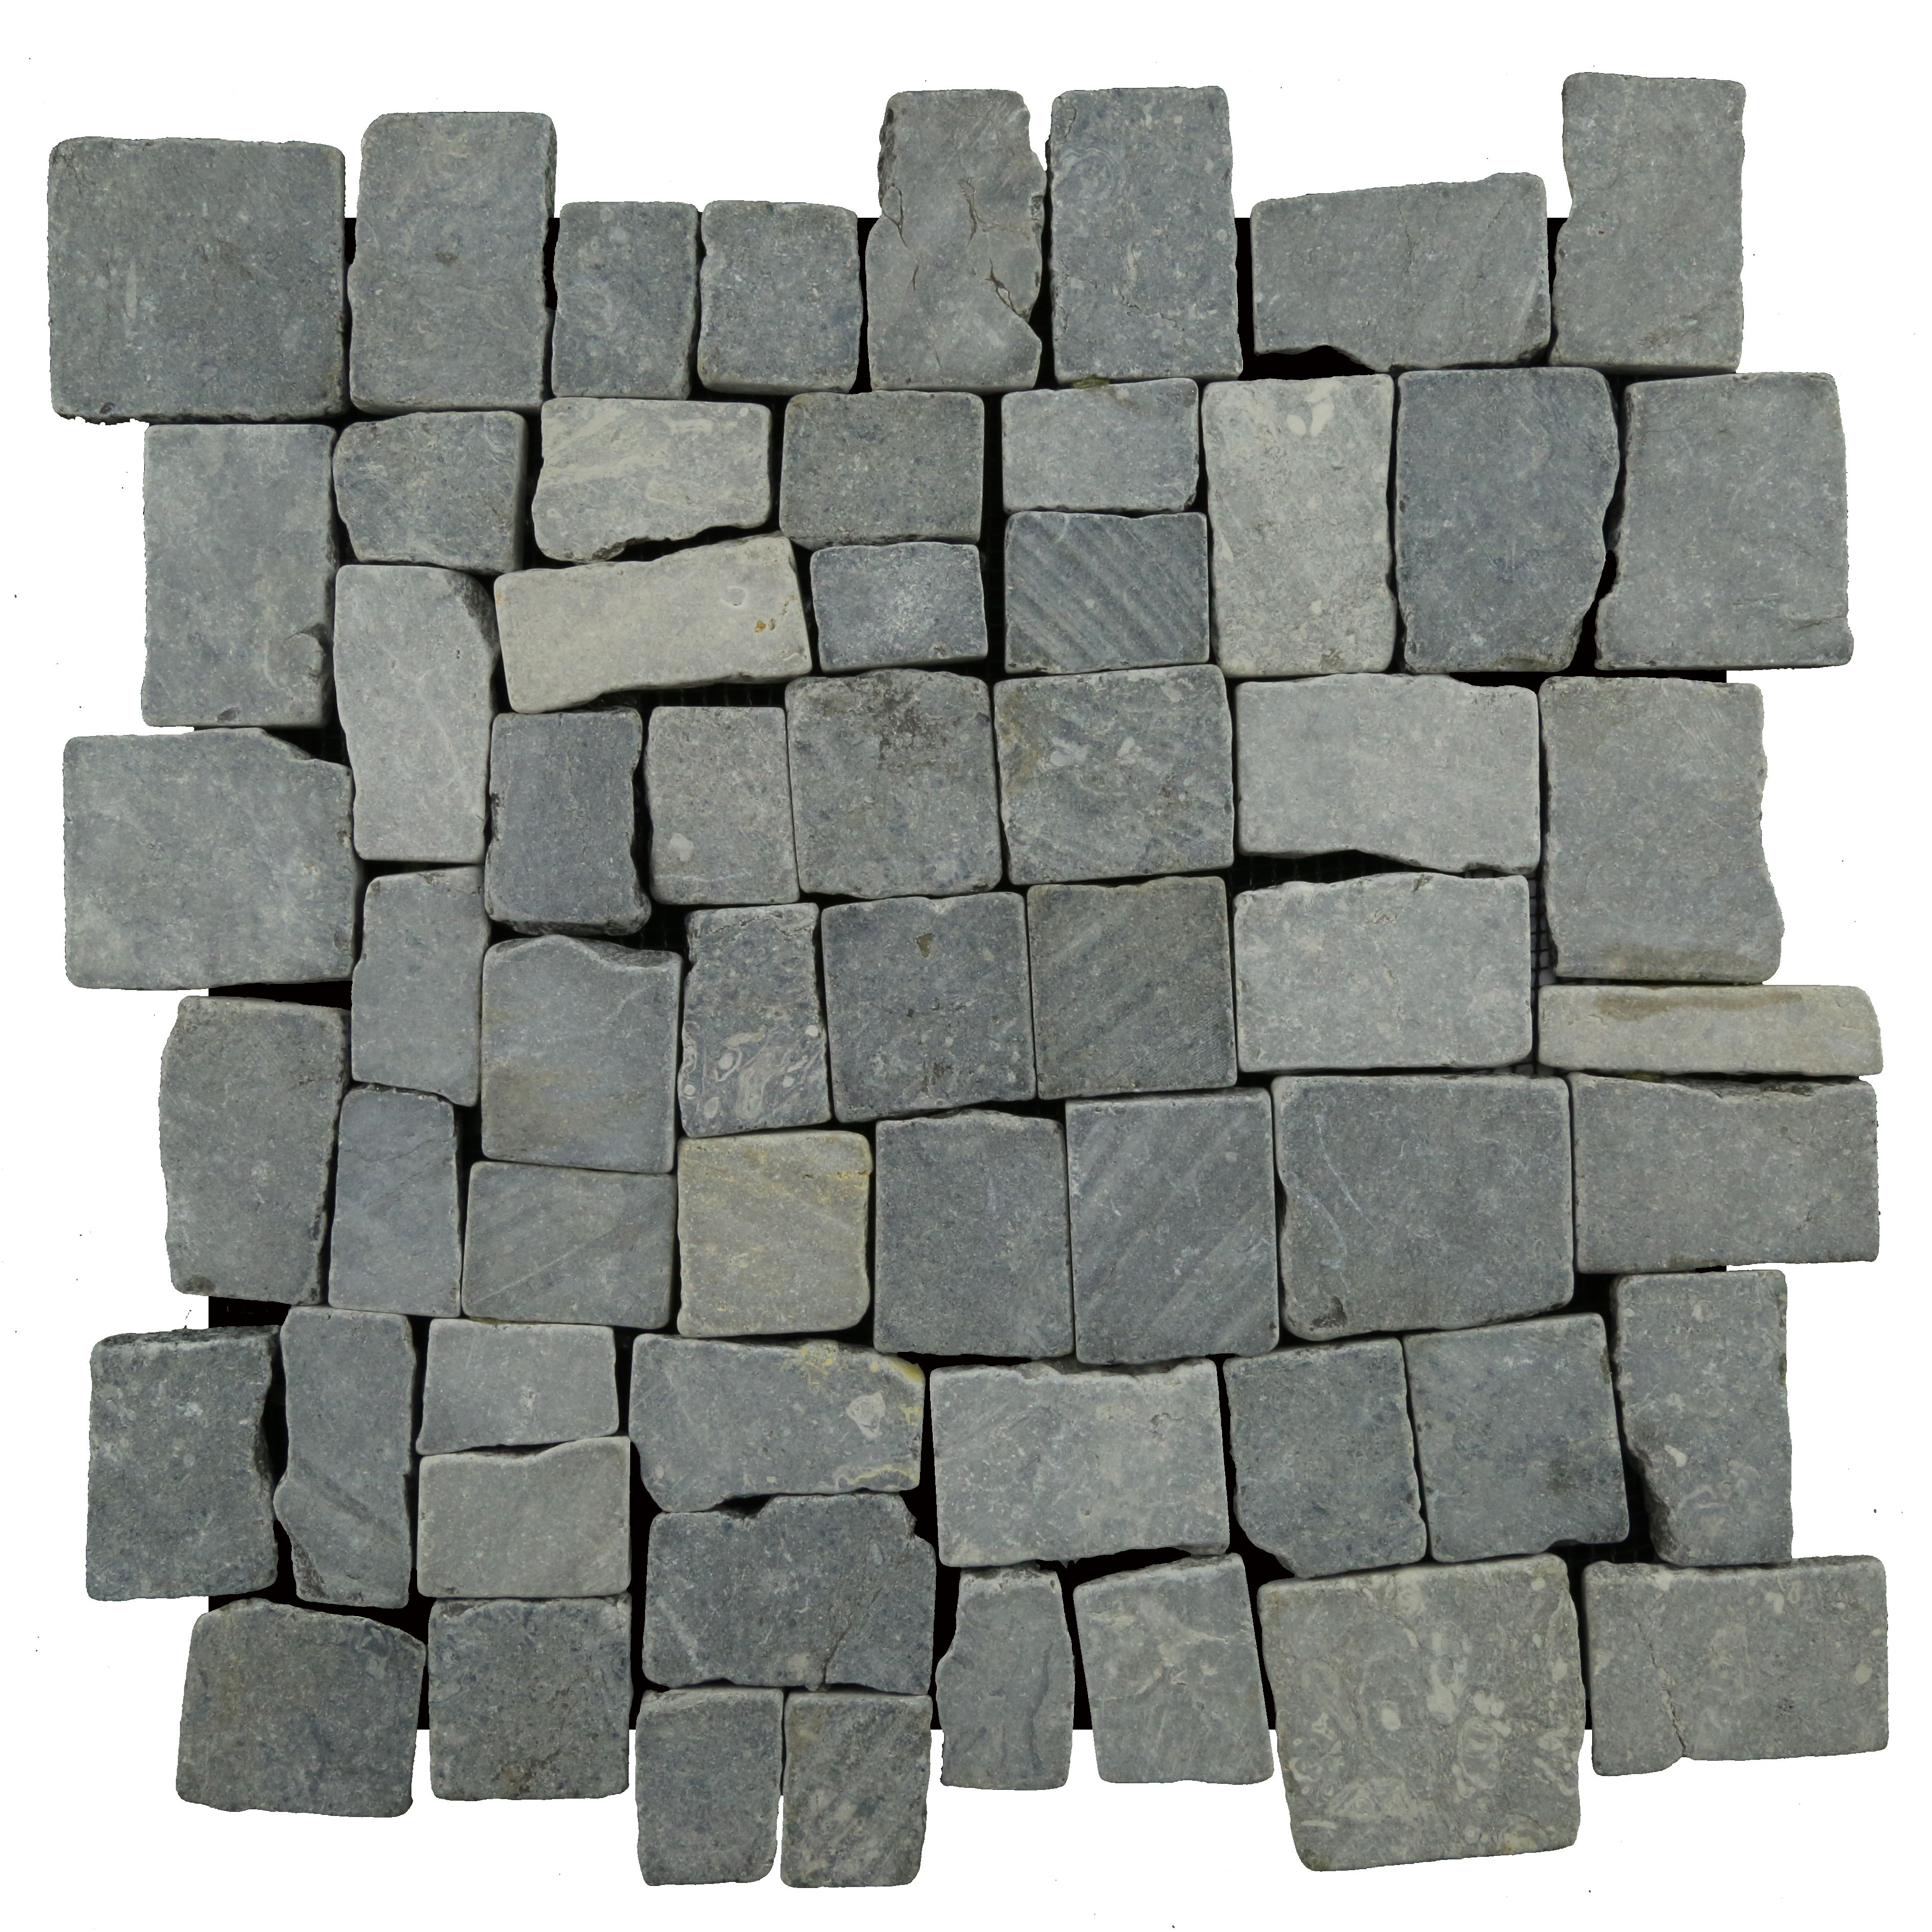 Easy To Install Mesh Backed Interlocking Natural Stone Tile Made Out Of High Quality Indonesian Grey Marb Mosaic Tiles Stone Mosaic Tile Marble Mosaic Tiles